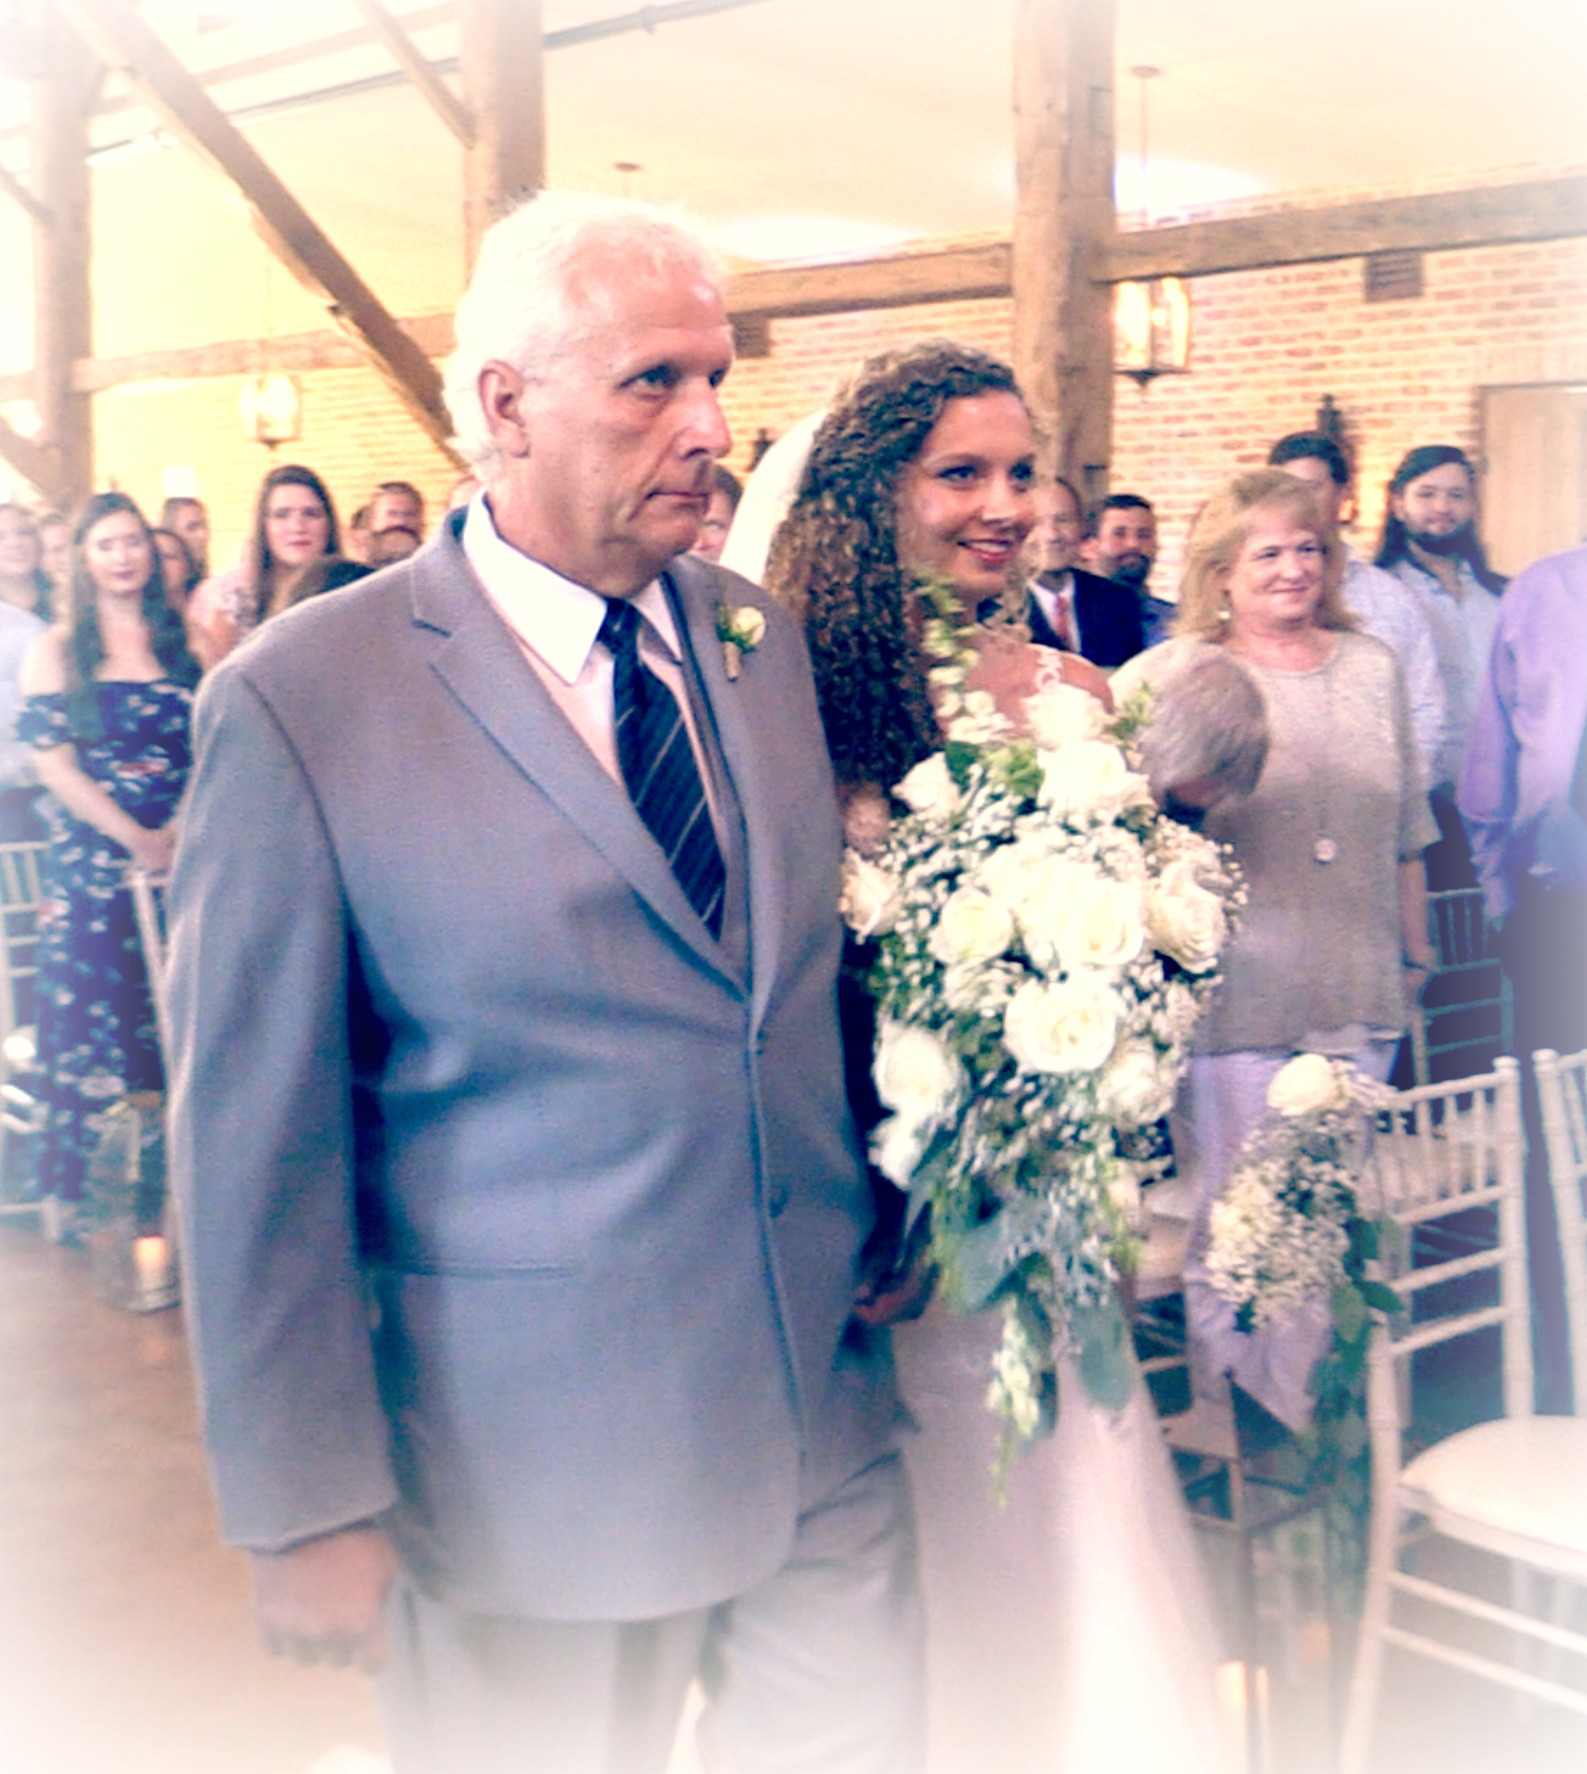 Senneff Wedding Father And Bride